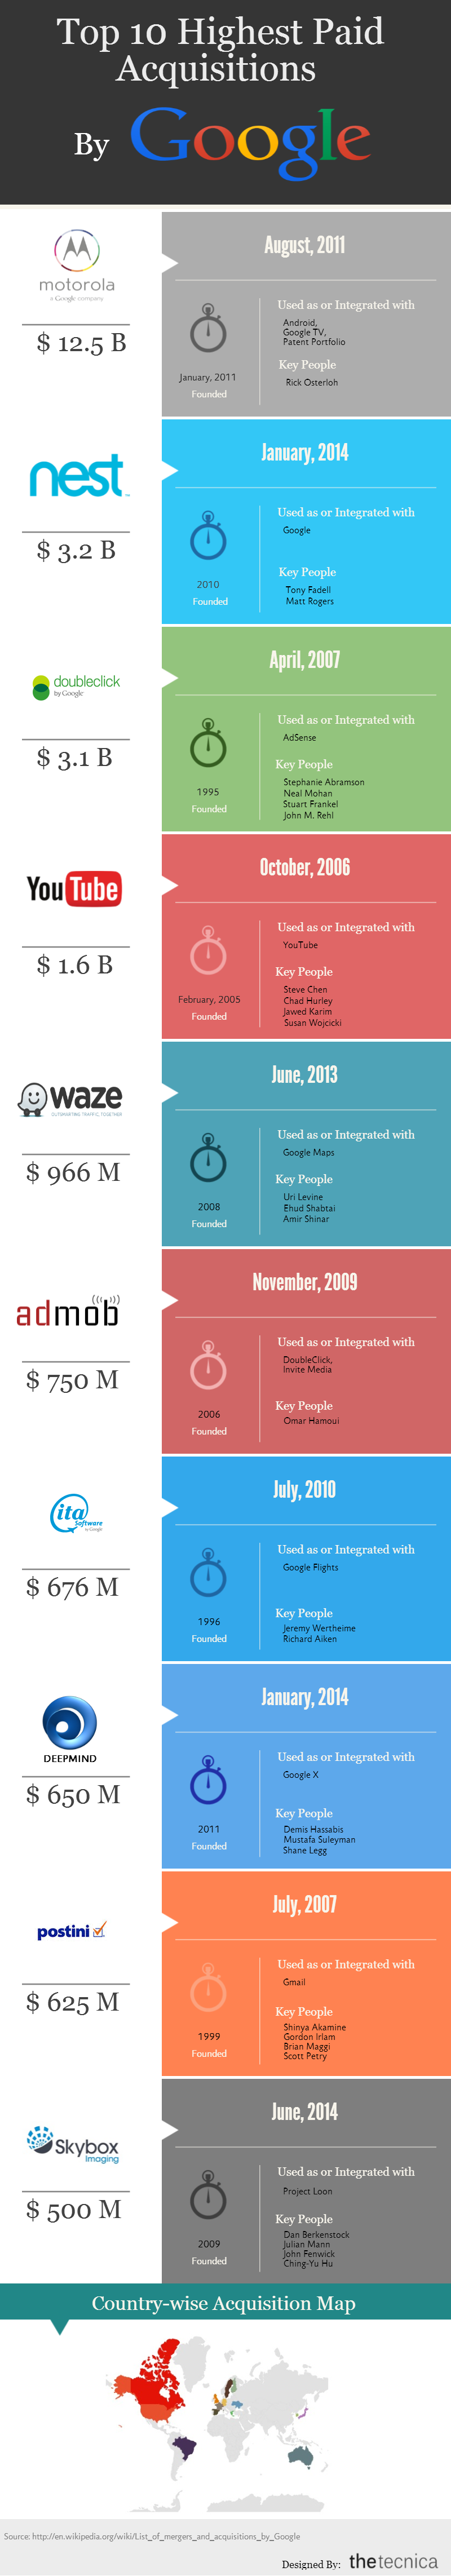 Top 10 Highest Paid Acquisition by Google